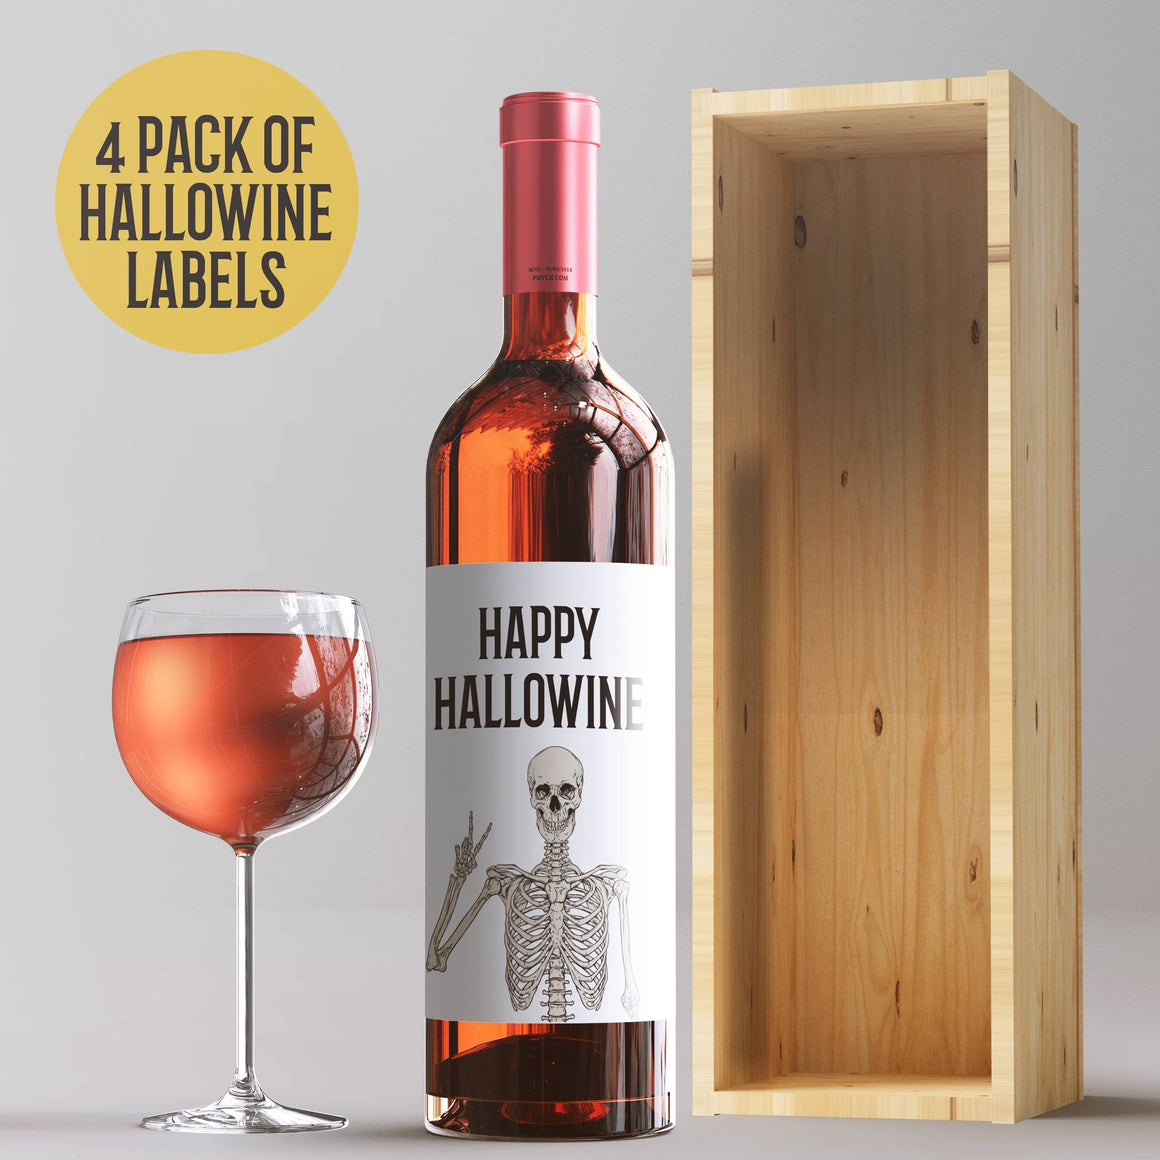 Hallowine Halloween Party Wine Labels - 4 Halloween Party Decor Stickers Happy Hallowine Trick or Treat Party Ideas Wine Bottle Sticker 9279